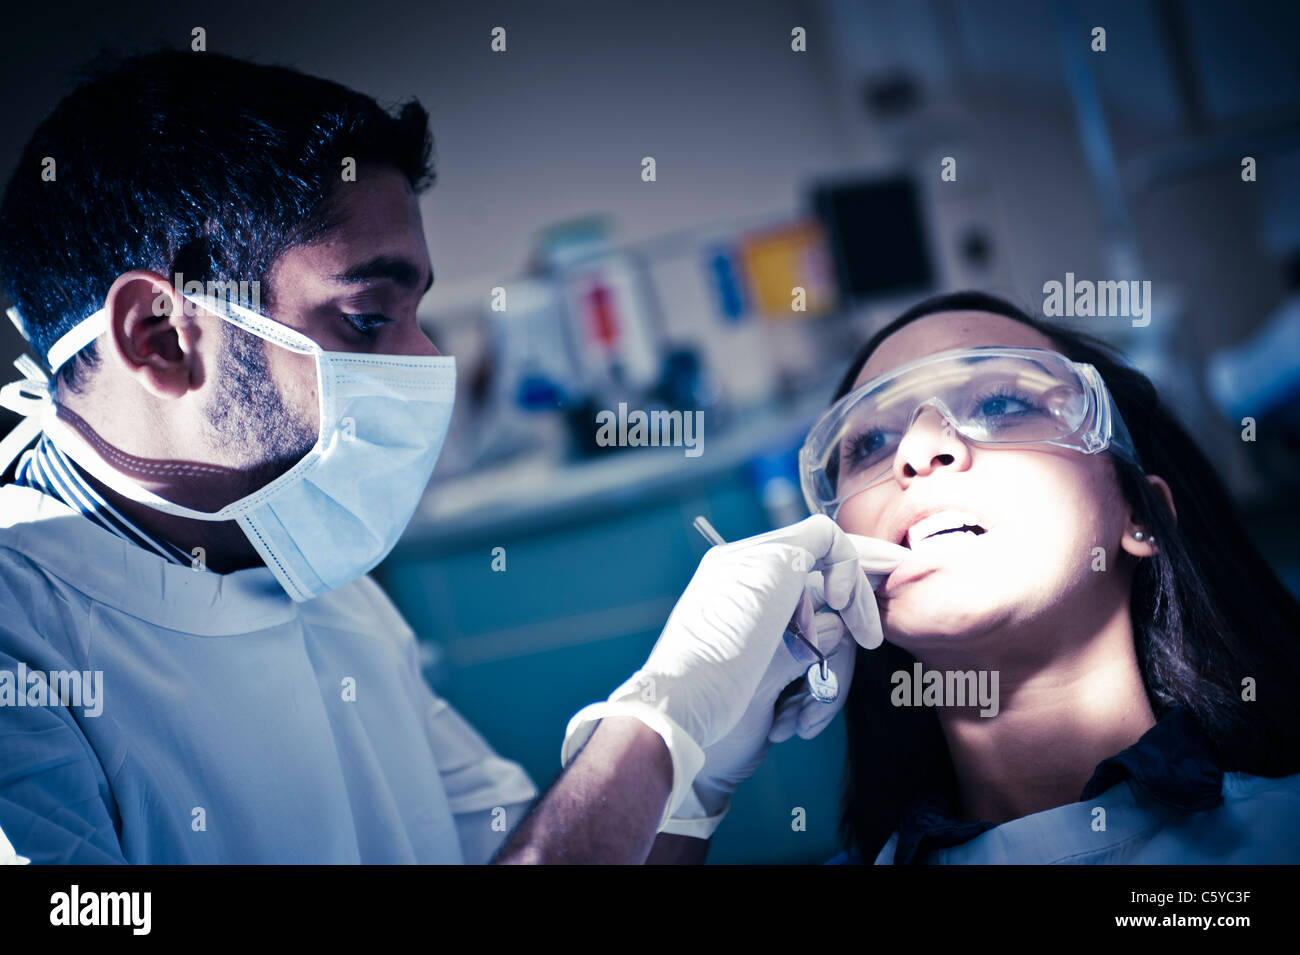 Male dentistry student performing dental surgery on female dentistry student in dentistry clinical setting - Stock Image